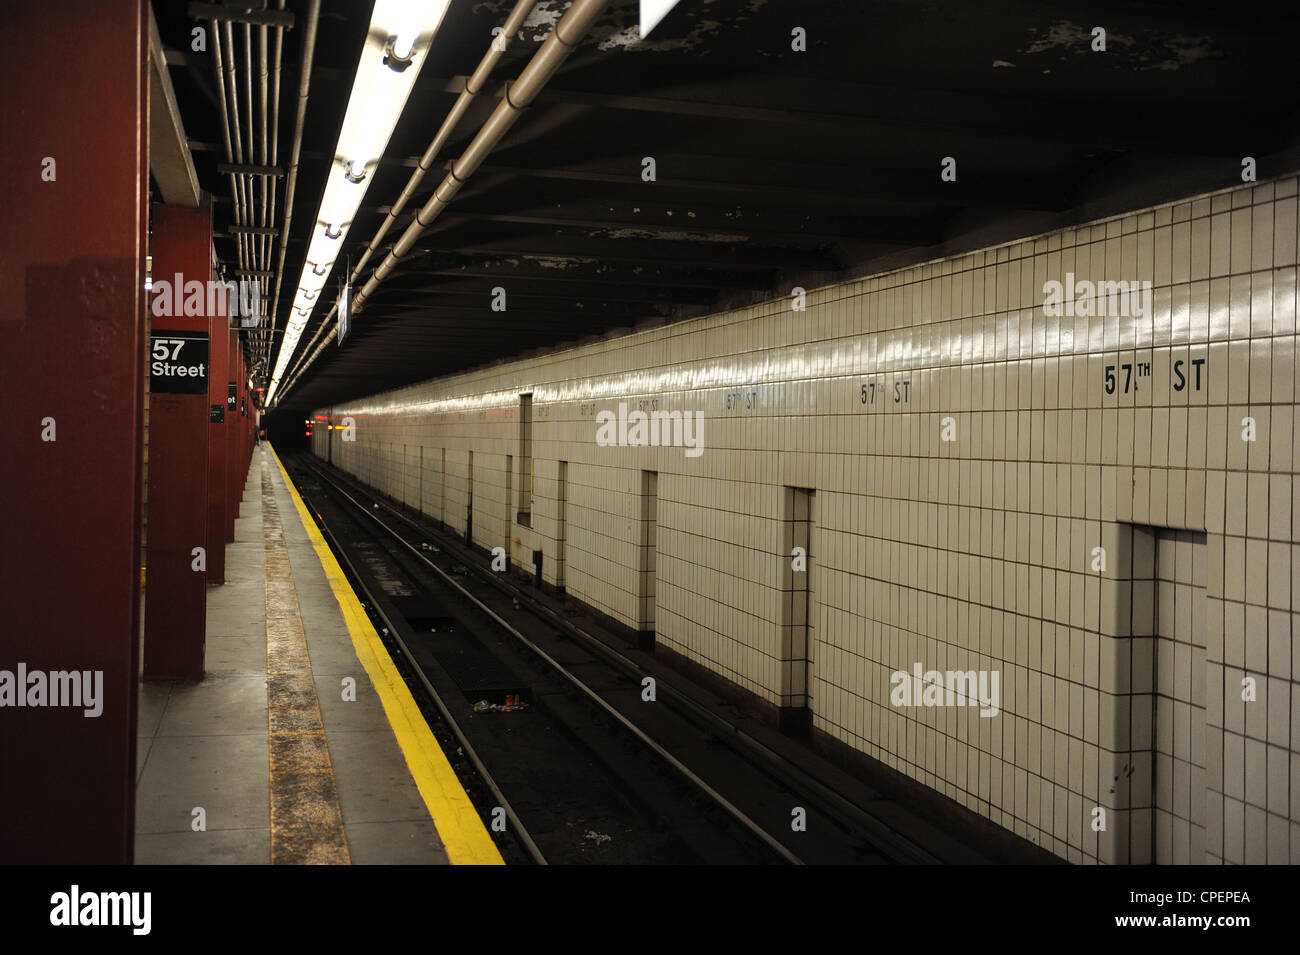 57th Street Subway Station, New York - Stock Image